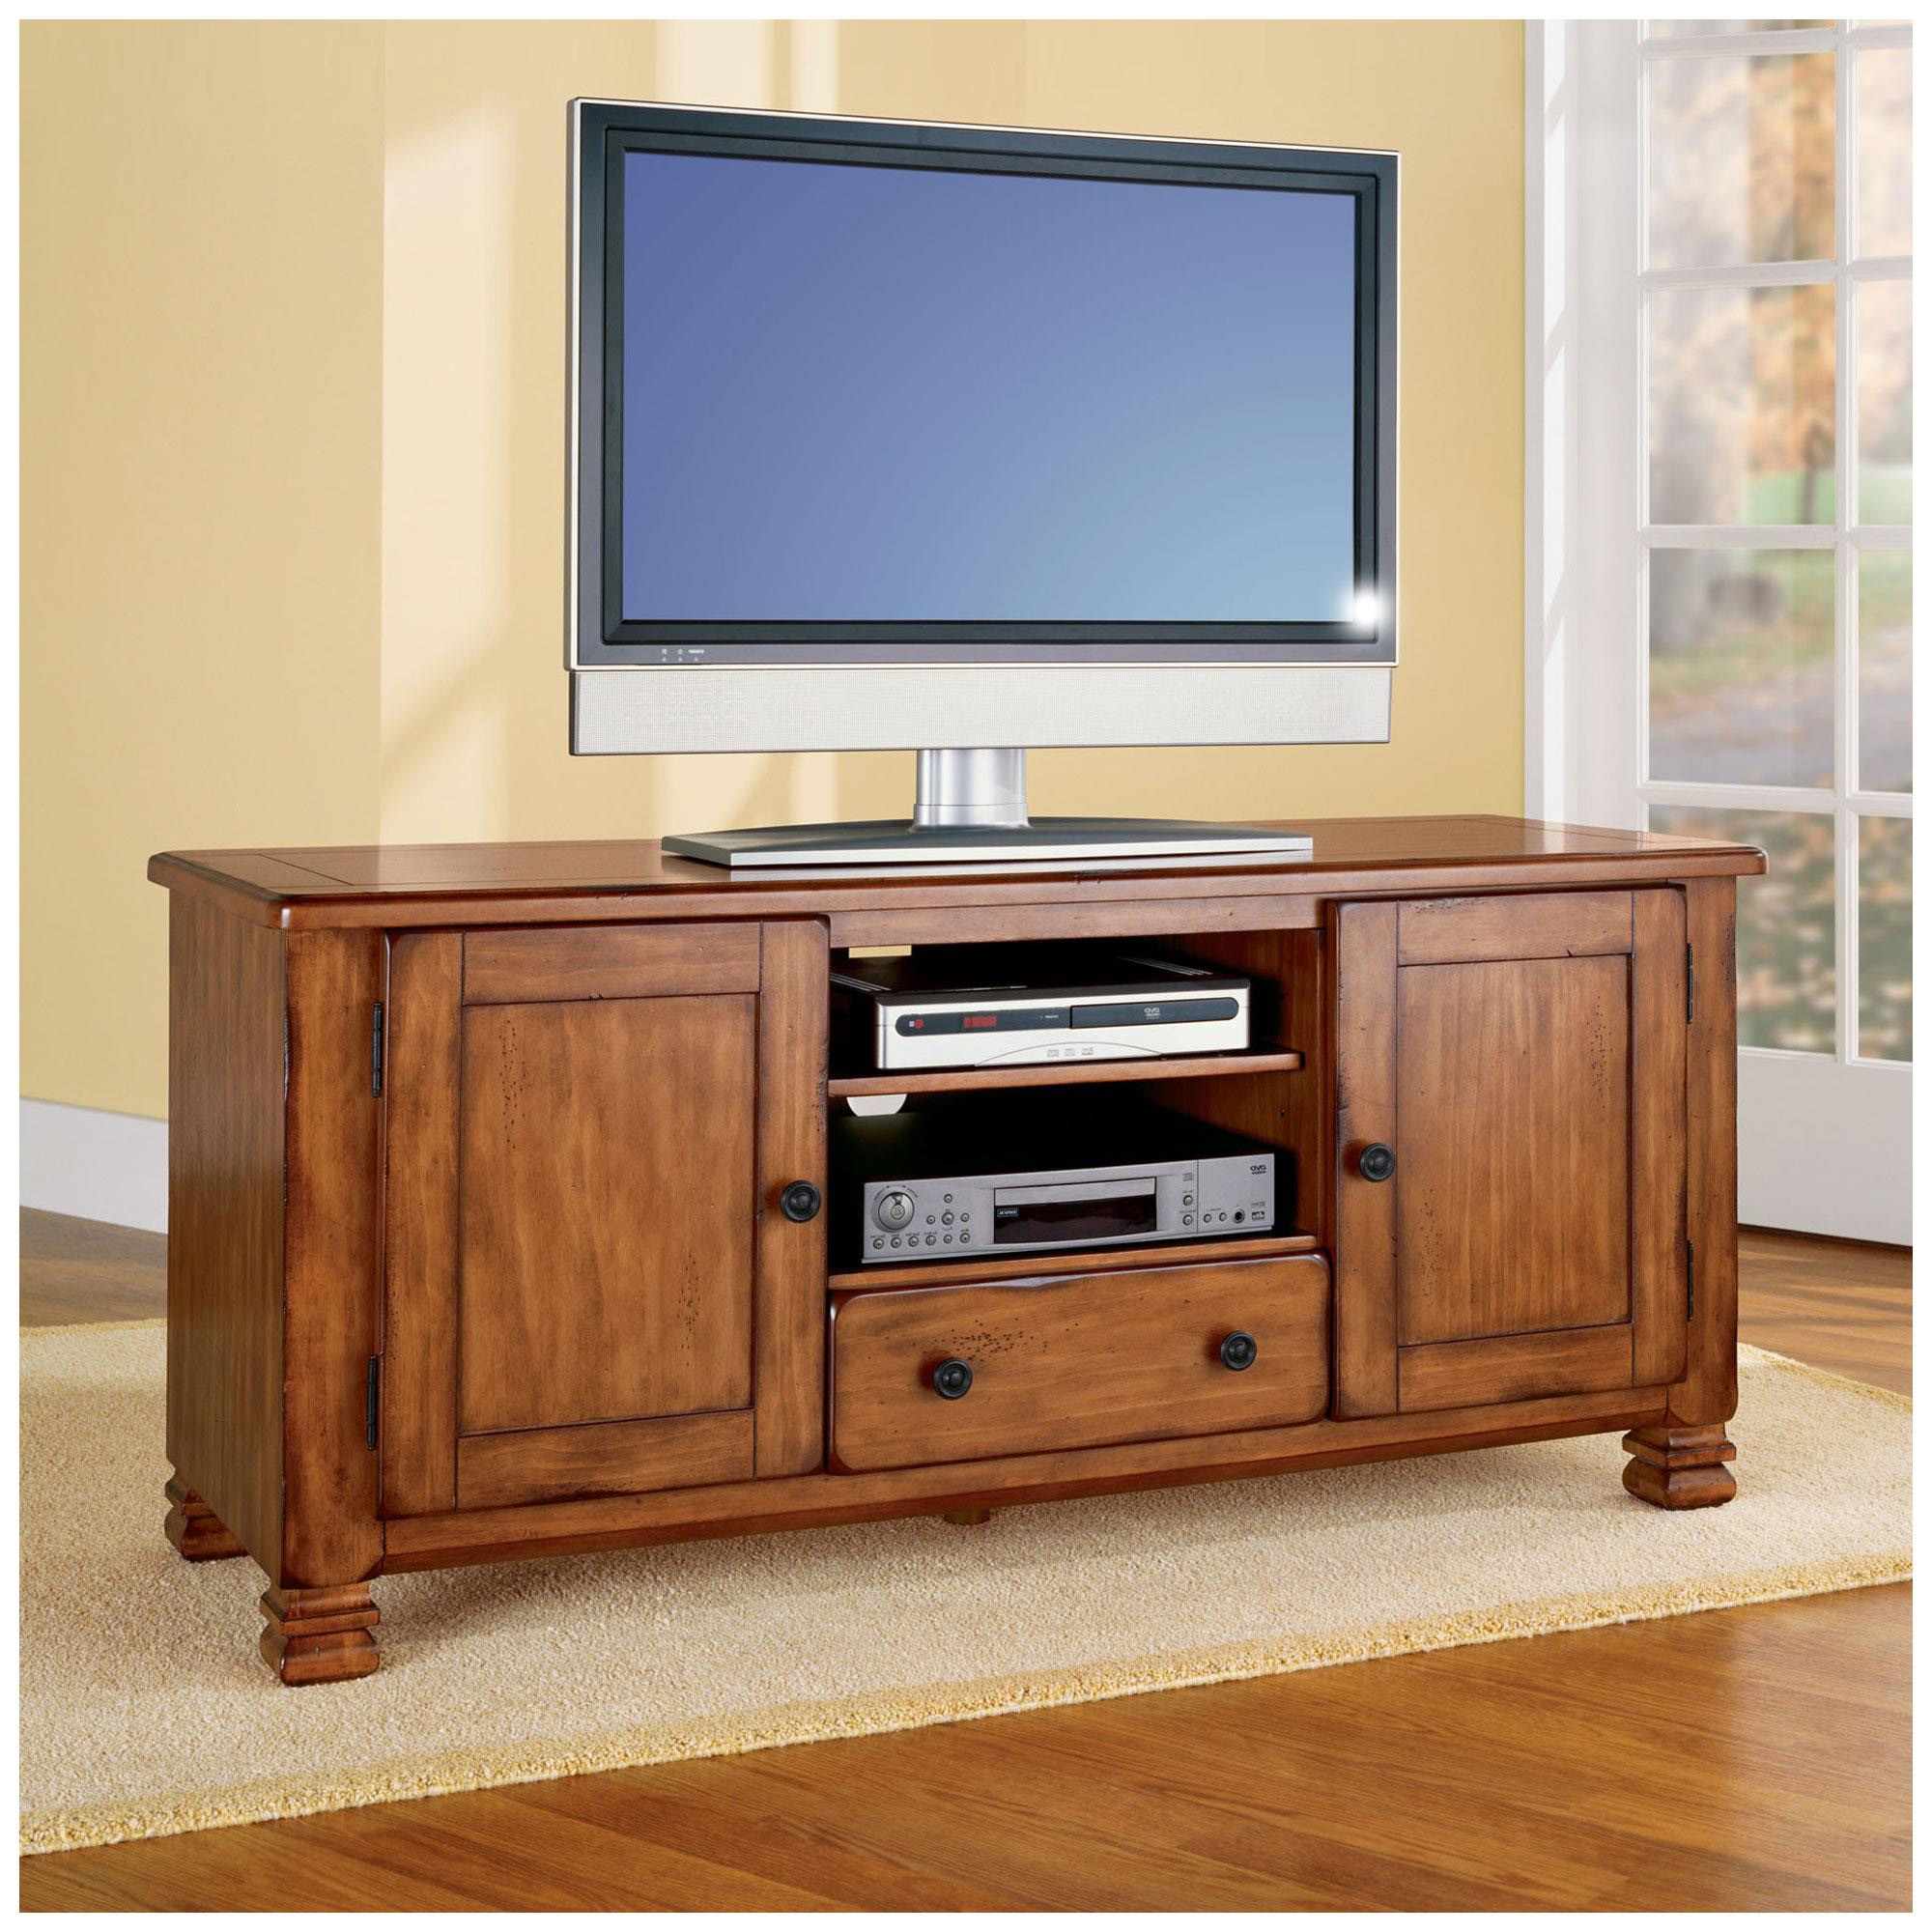 Trendy Reclaimed Wood Tv Console Real Stands For Flat Screens Solid Corner With Rustic Wood Tv Cabinets (View 20 of 20)